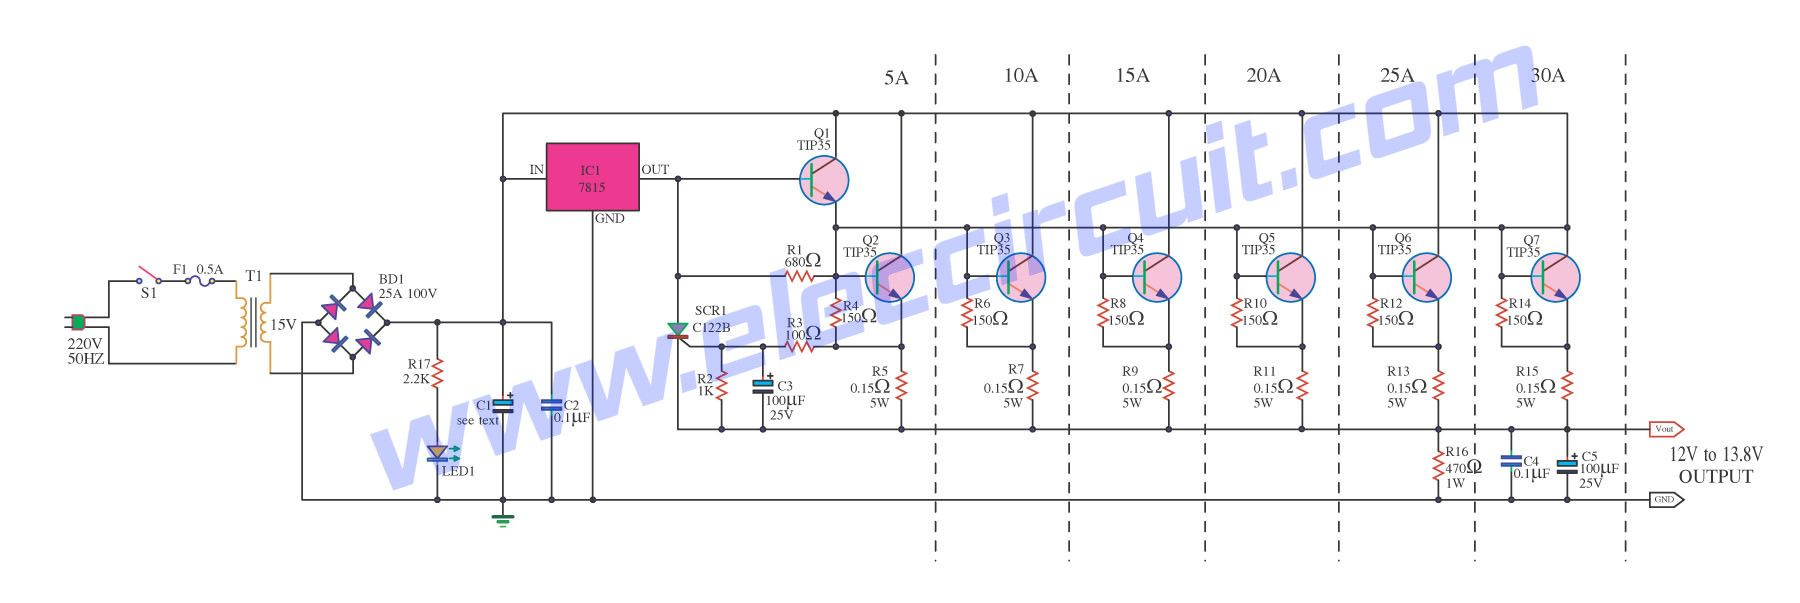 F E Eabf E Fbbcb A C on 13 8 Vdc Power Supply Schematic